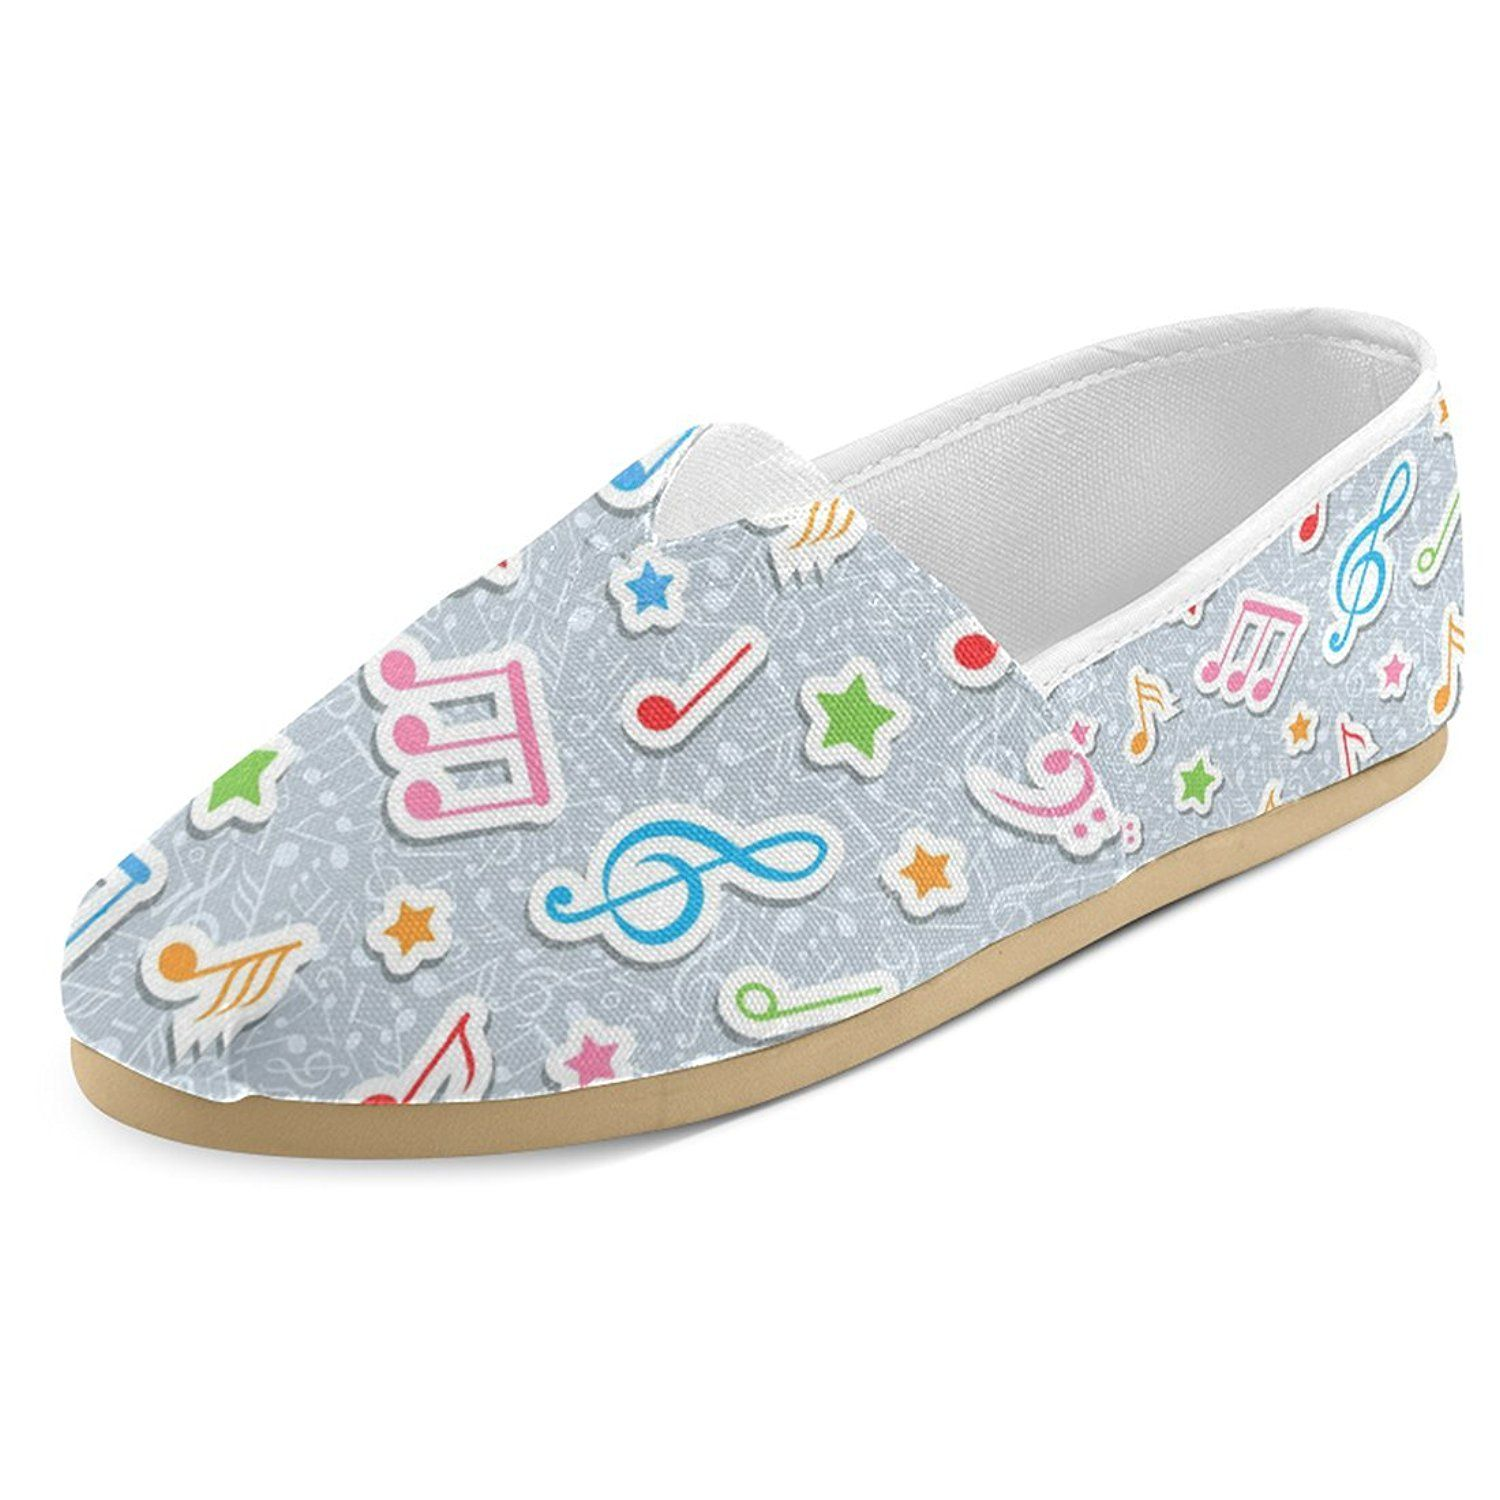 216d39490e InterestPrint Music Note Casual Women s Canvas Slip-On Shoes Espadrille      Click image